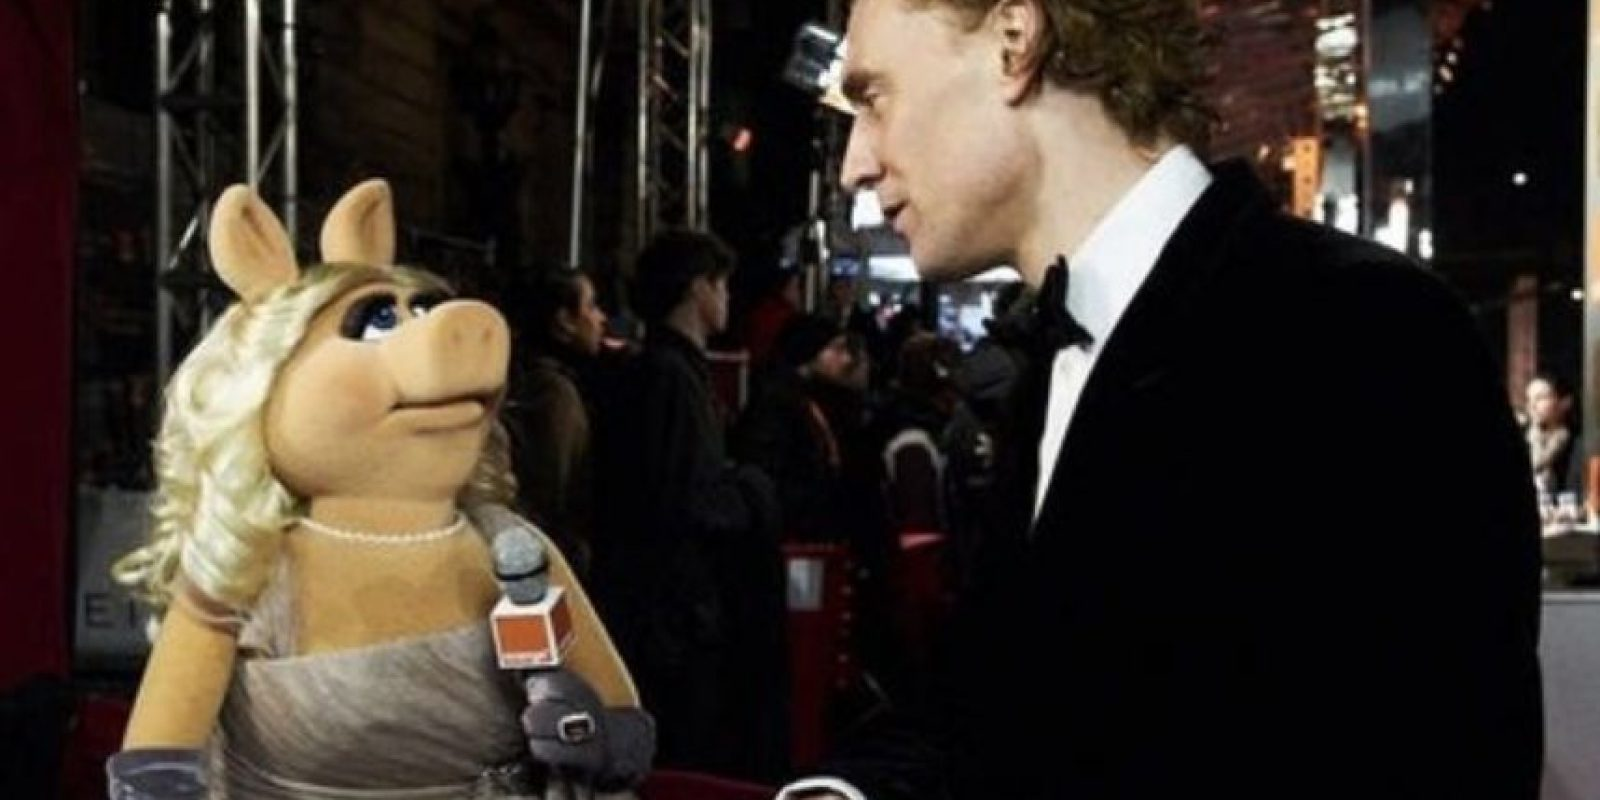 Además ha estado con galanes como Tom Hiddleston. Foto: vía Tumblr